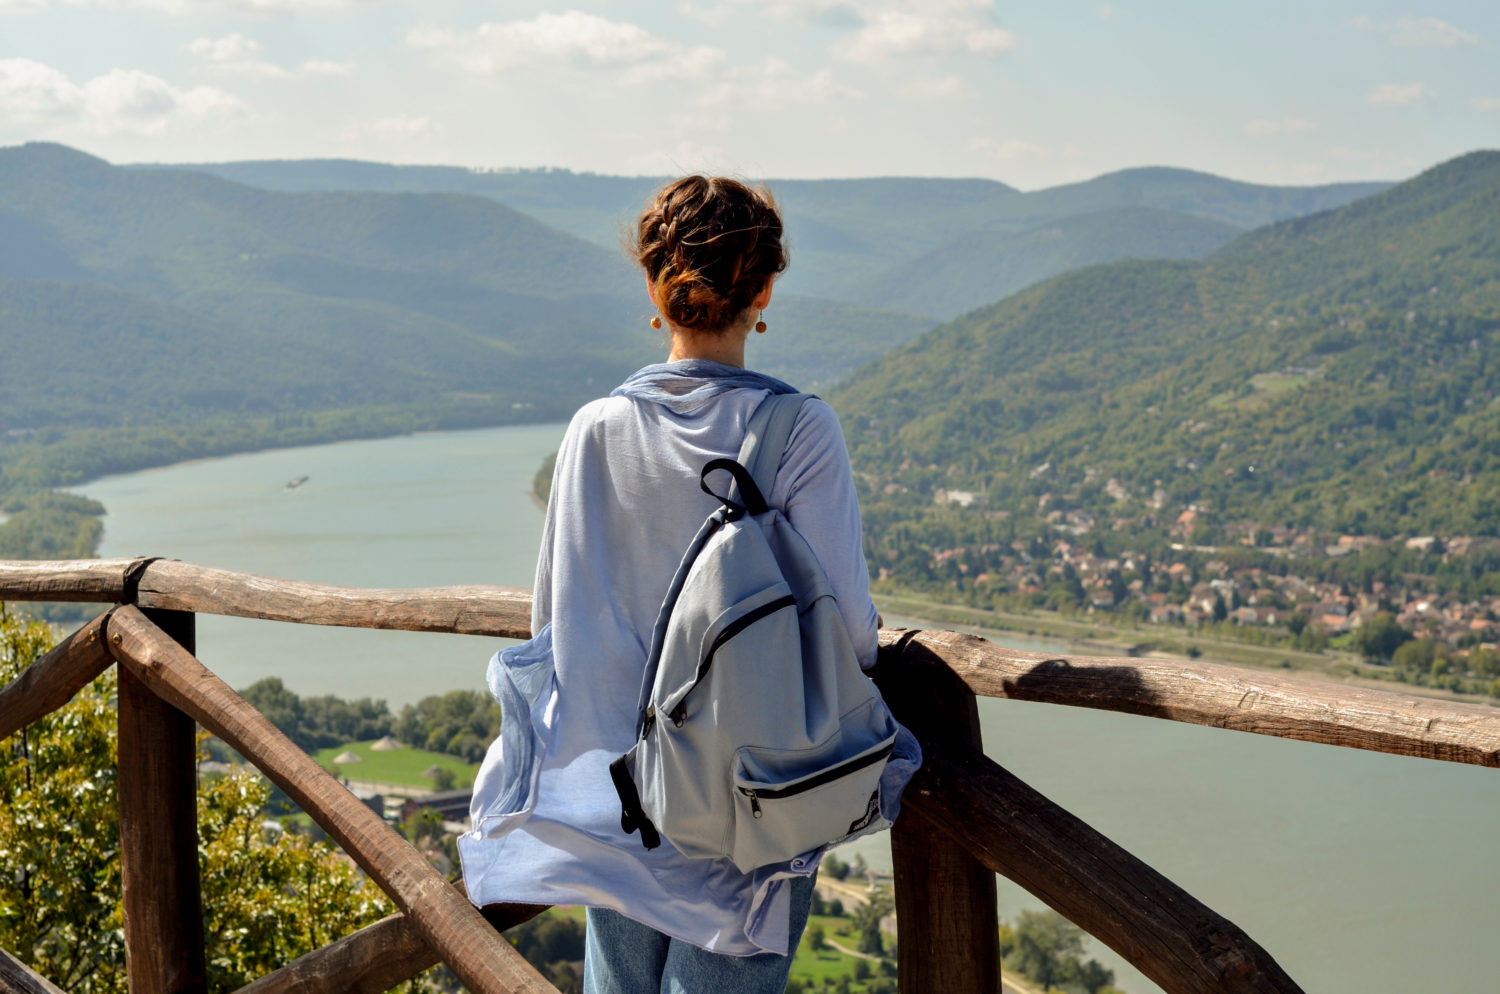 Woman with a backpack overlooking the Danube river